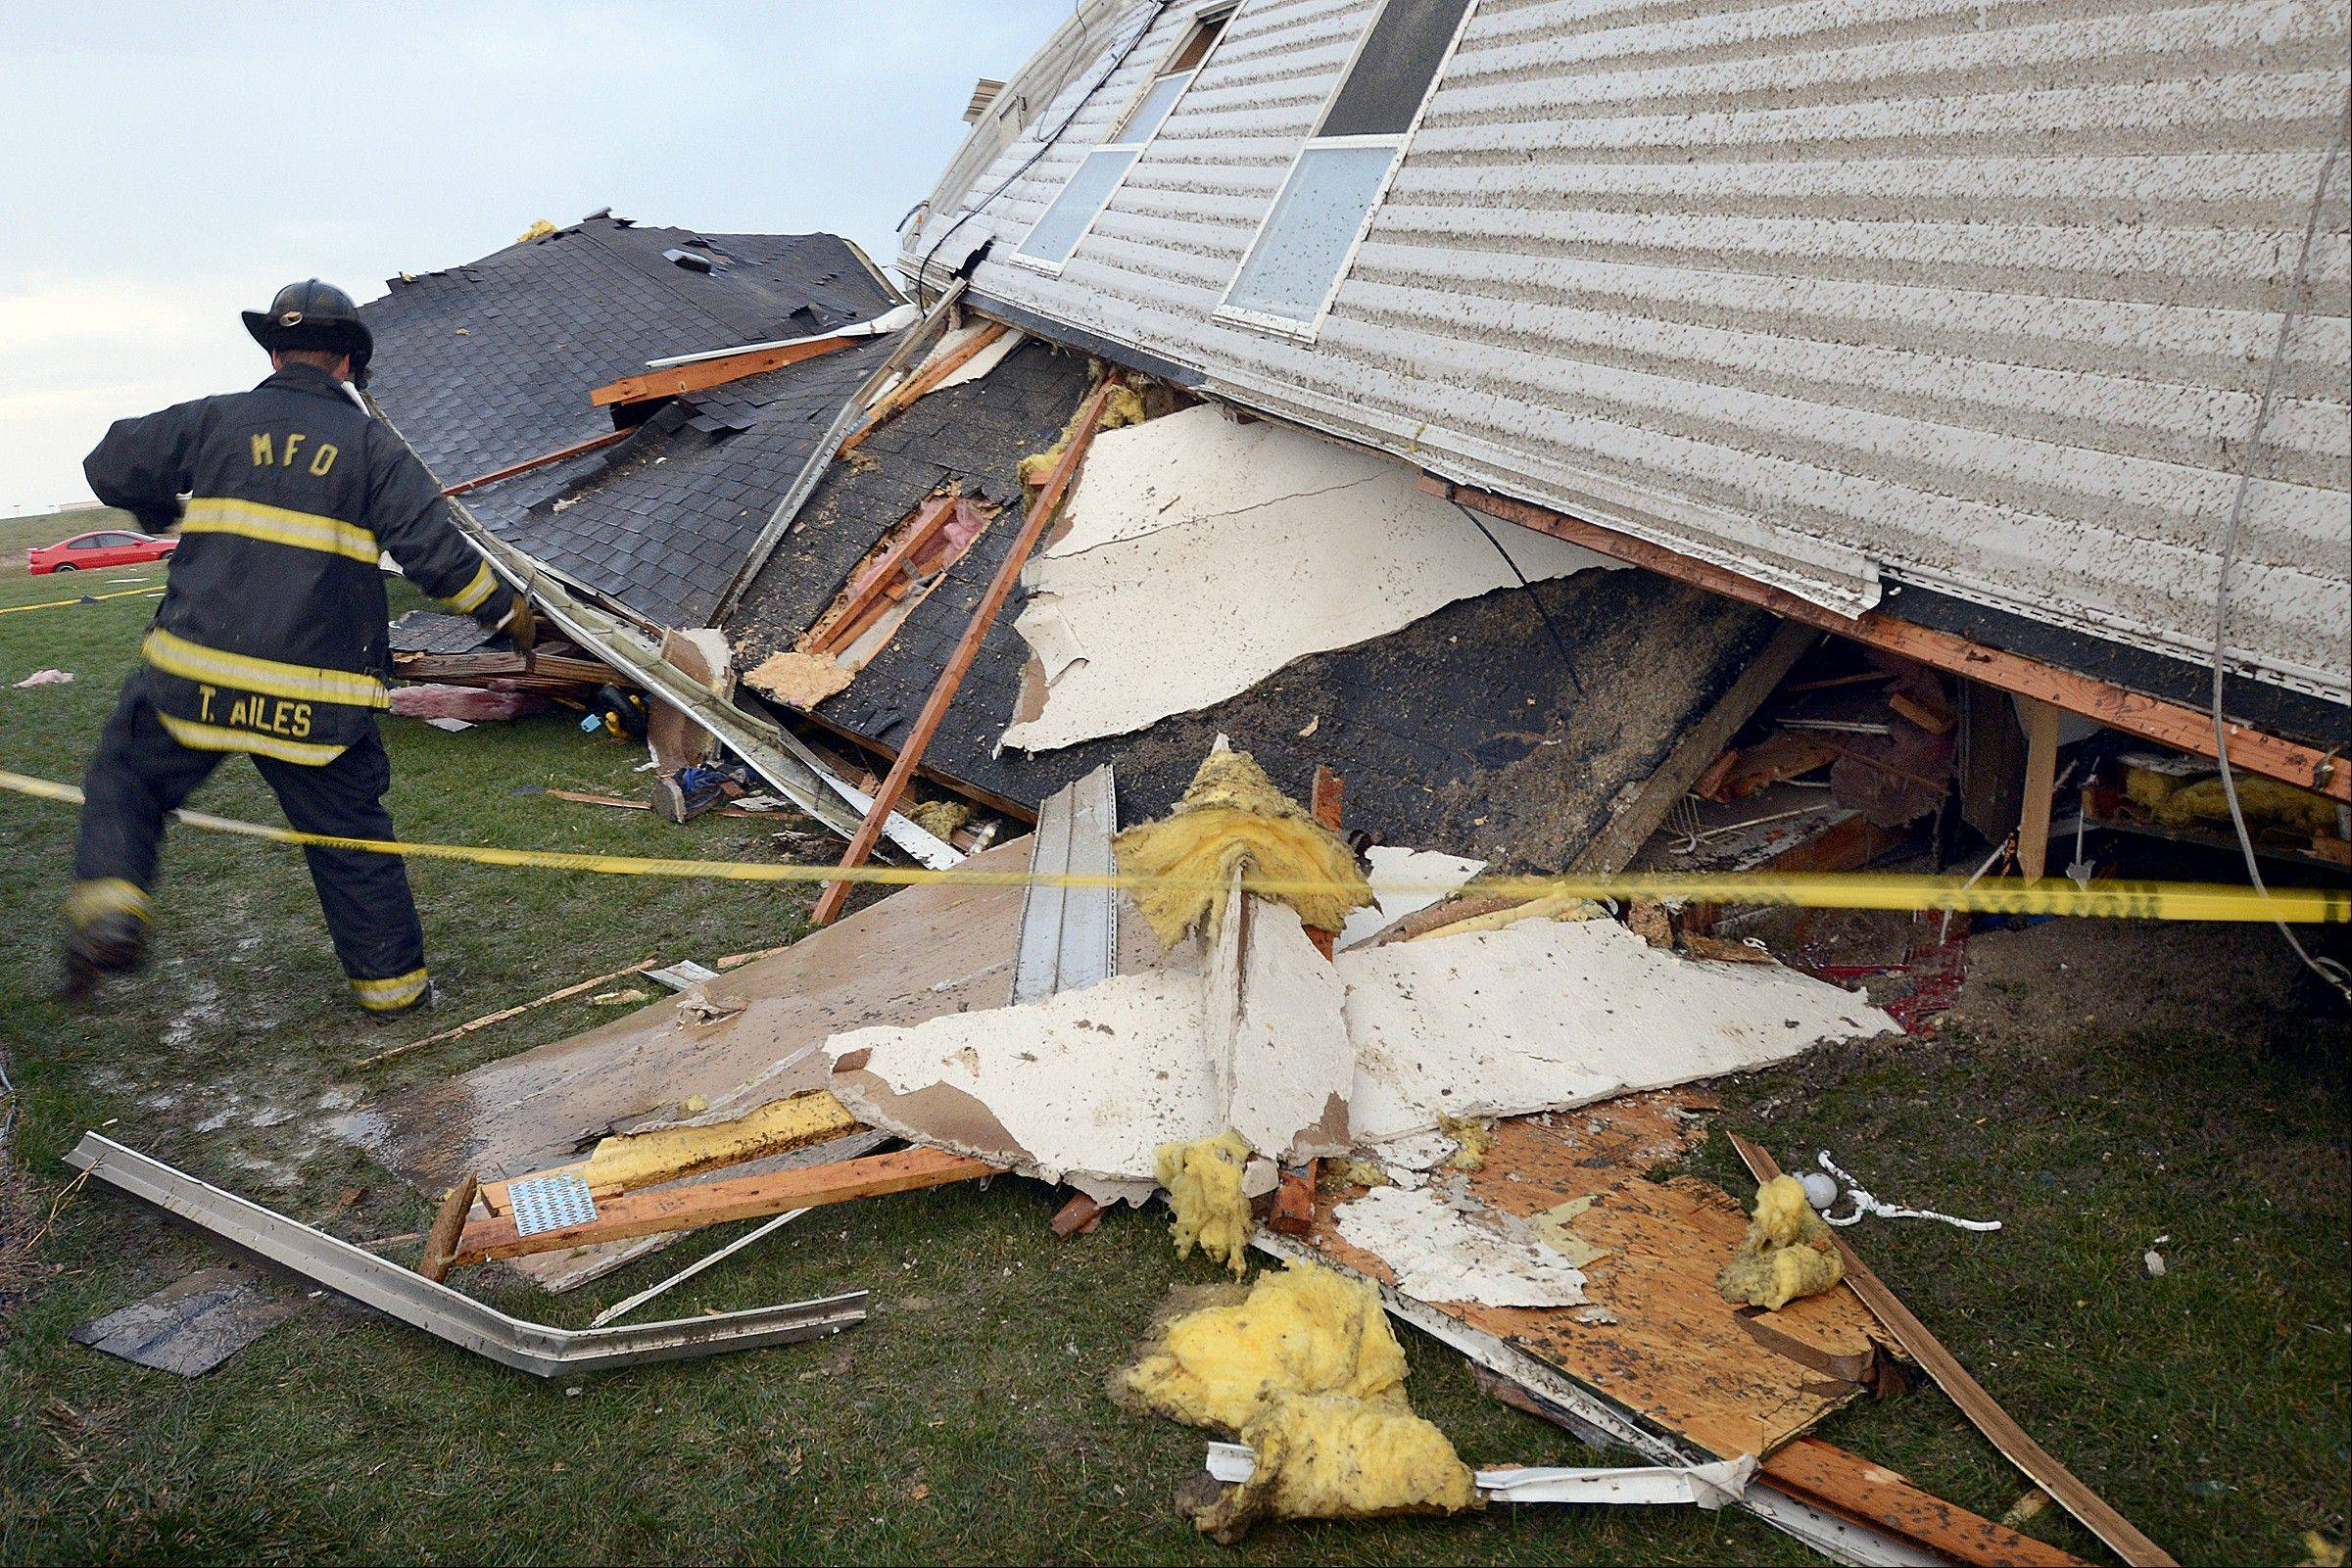 A Marion firefighter steps around wind-damaged trailers at Summit Village east of Marion, Ind., after storms blew through Marion and Grant County on Sunday afternoon, Nov. 17, 2013.